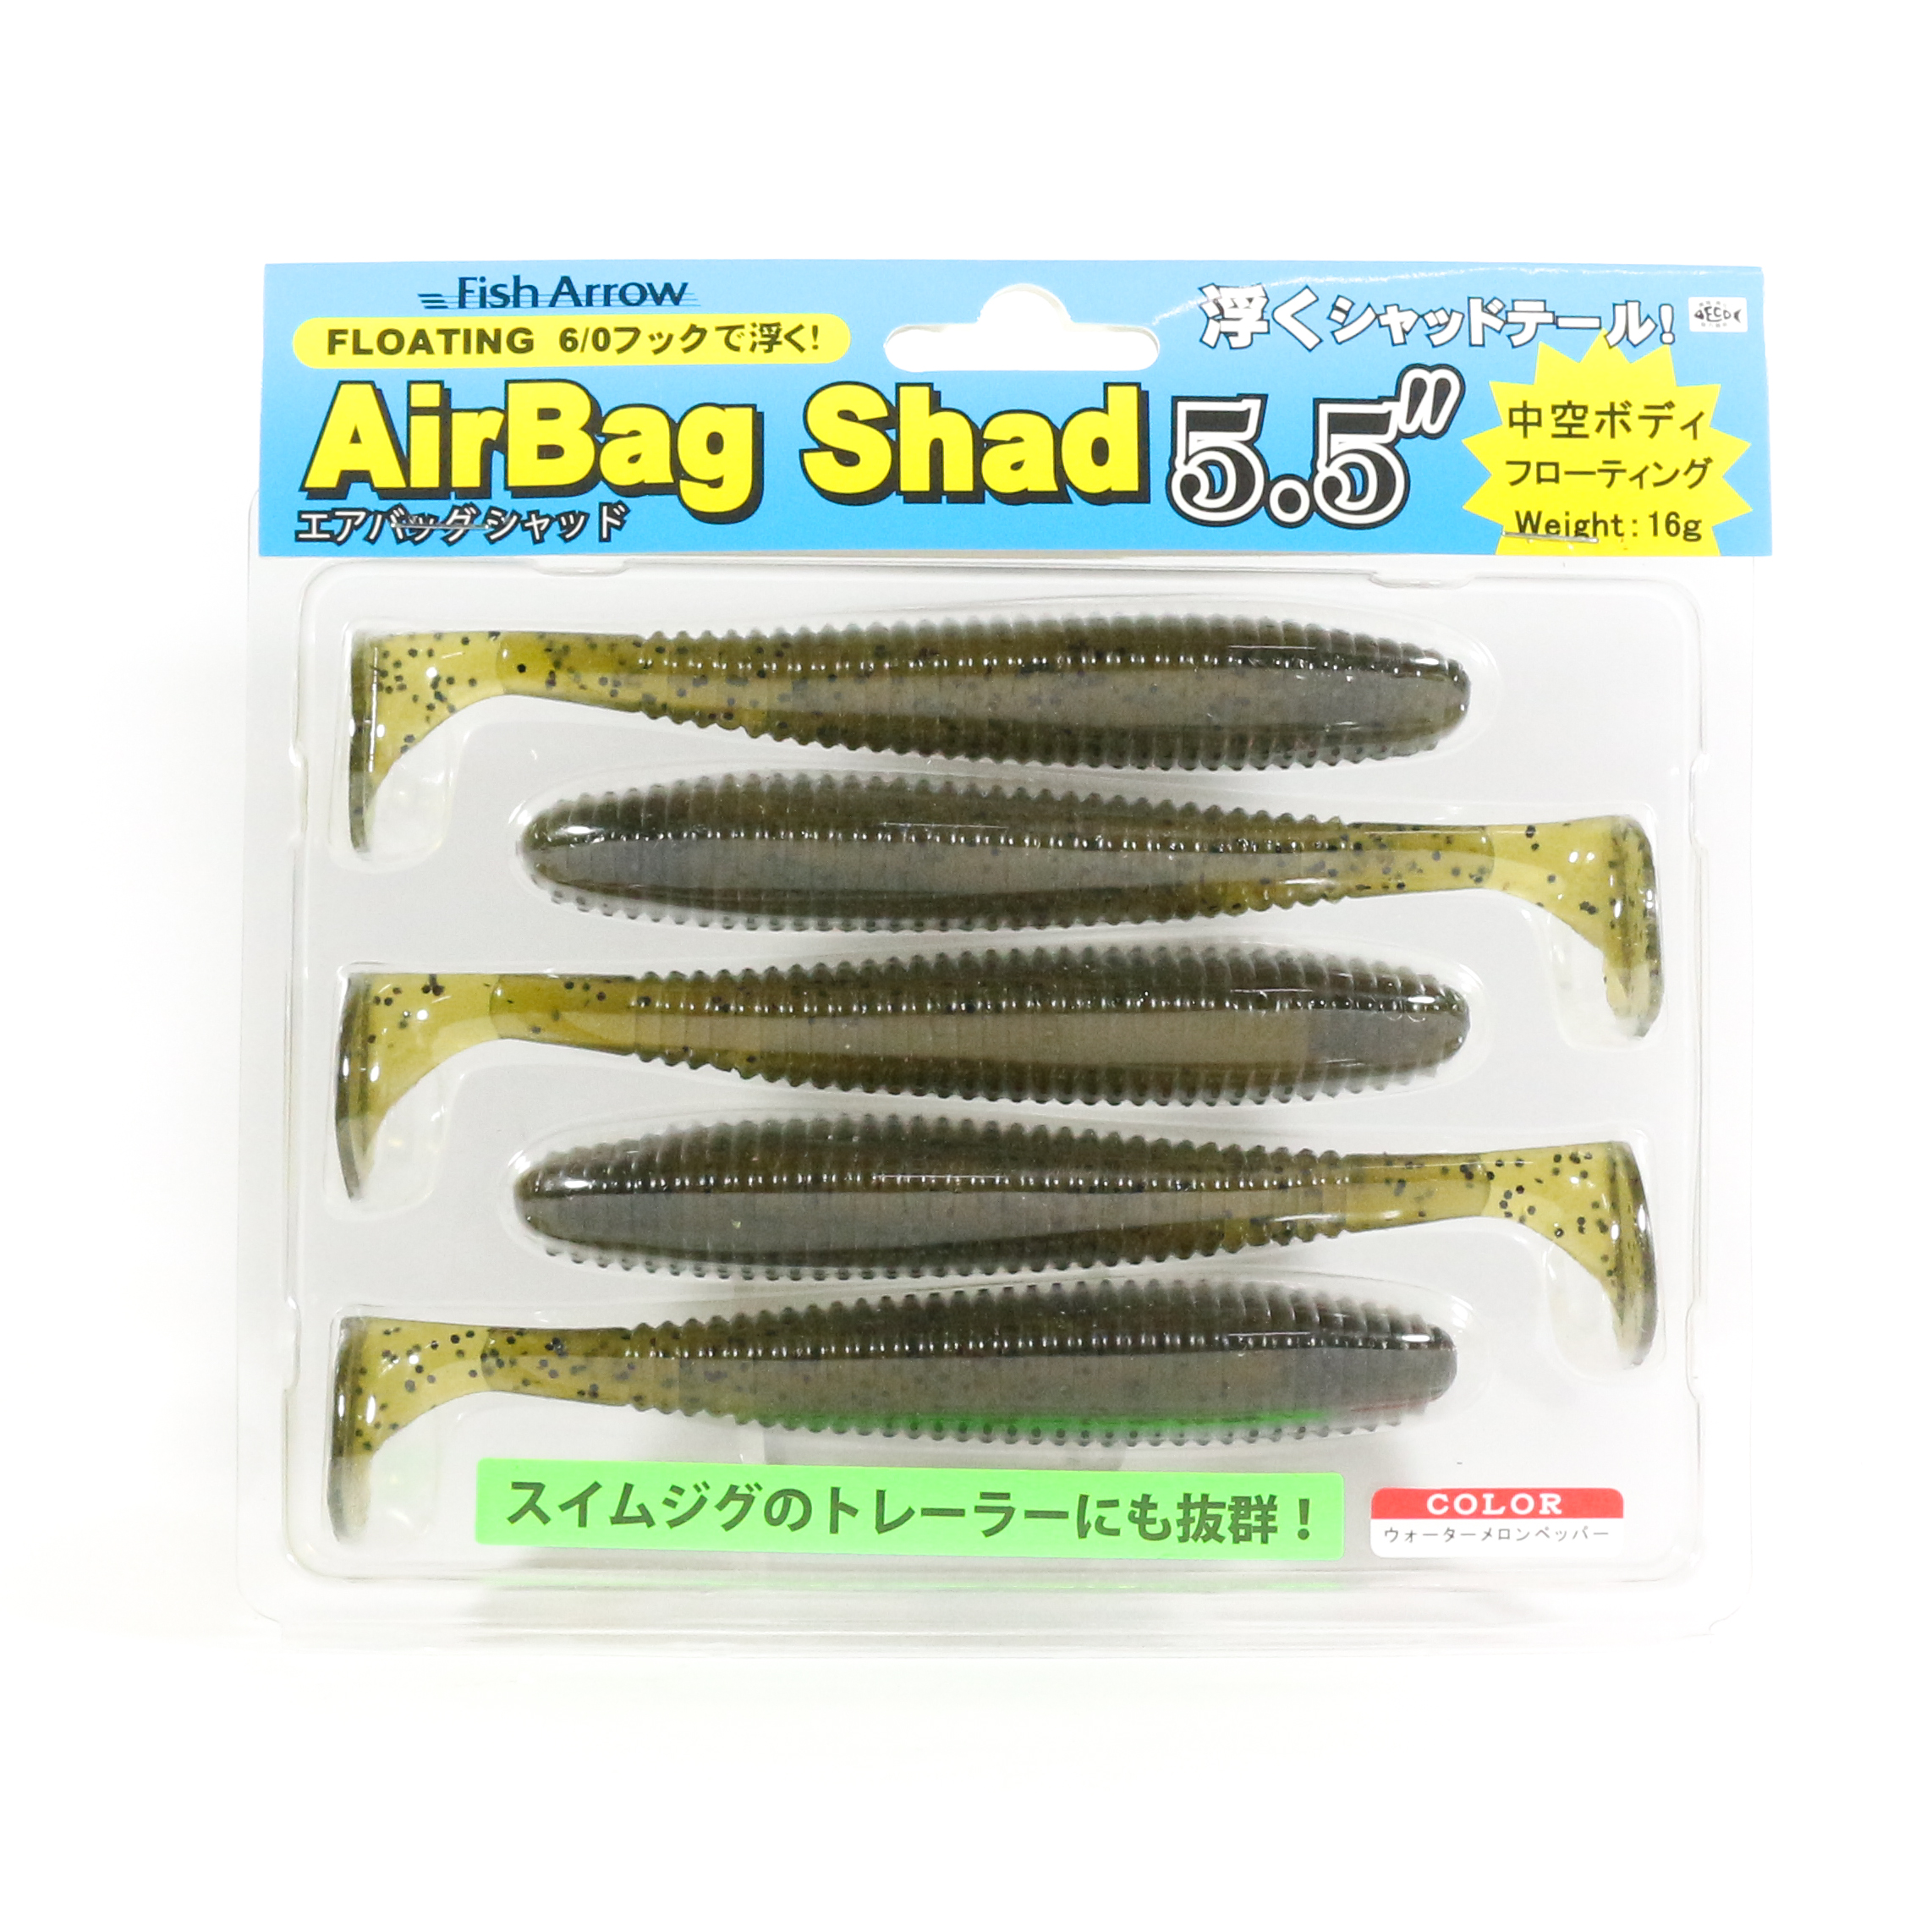 Fish Arrow Soft Lure Air Bag Shad 5.5 Inch 5 Piece per pack #02 (3272)